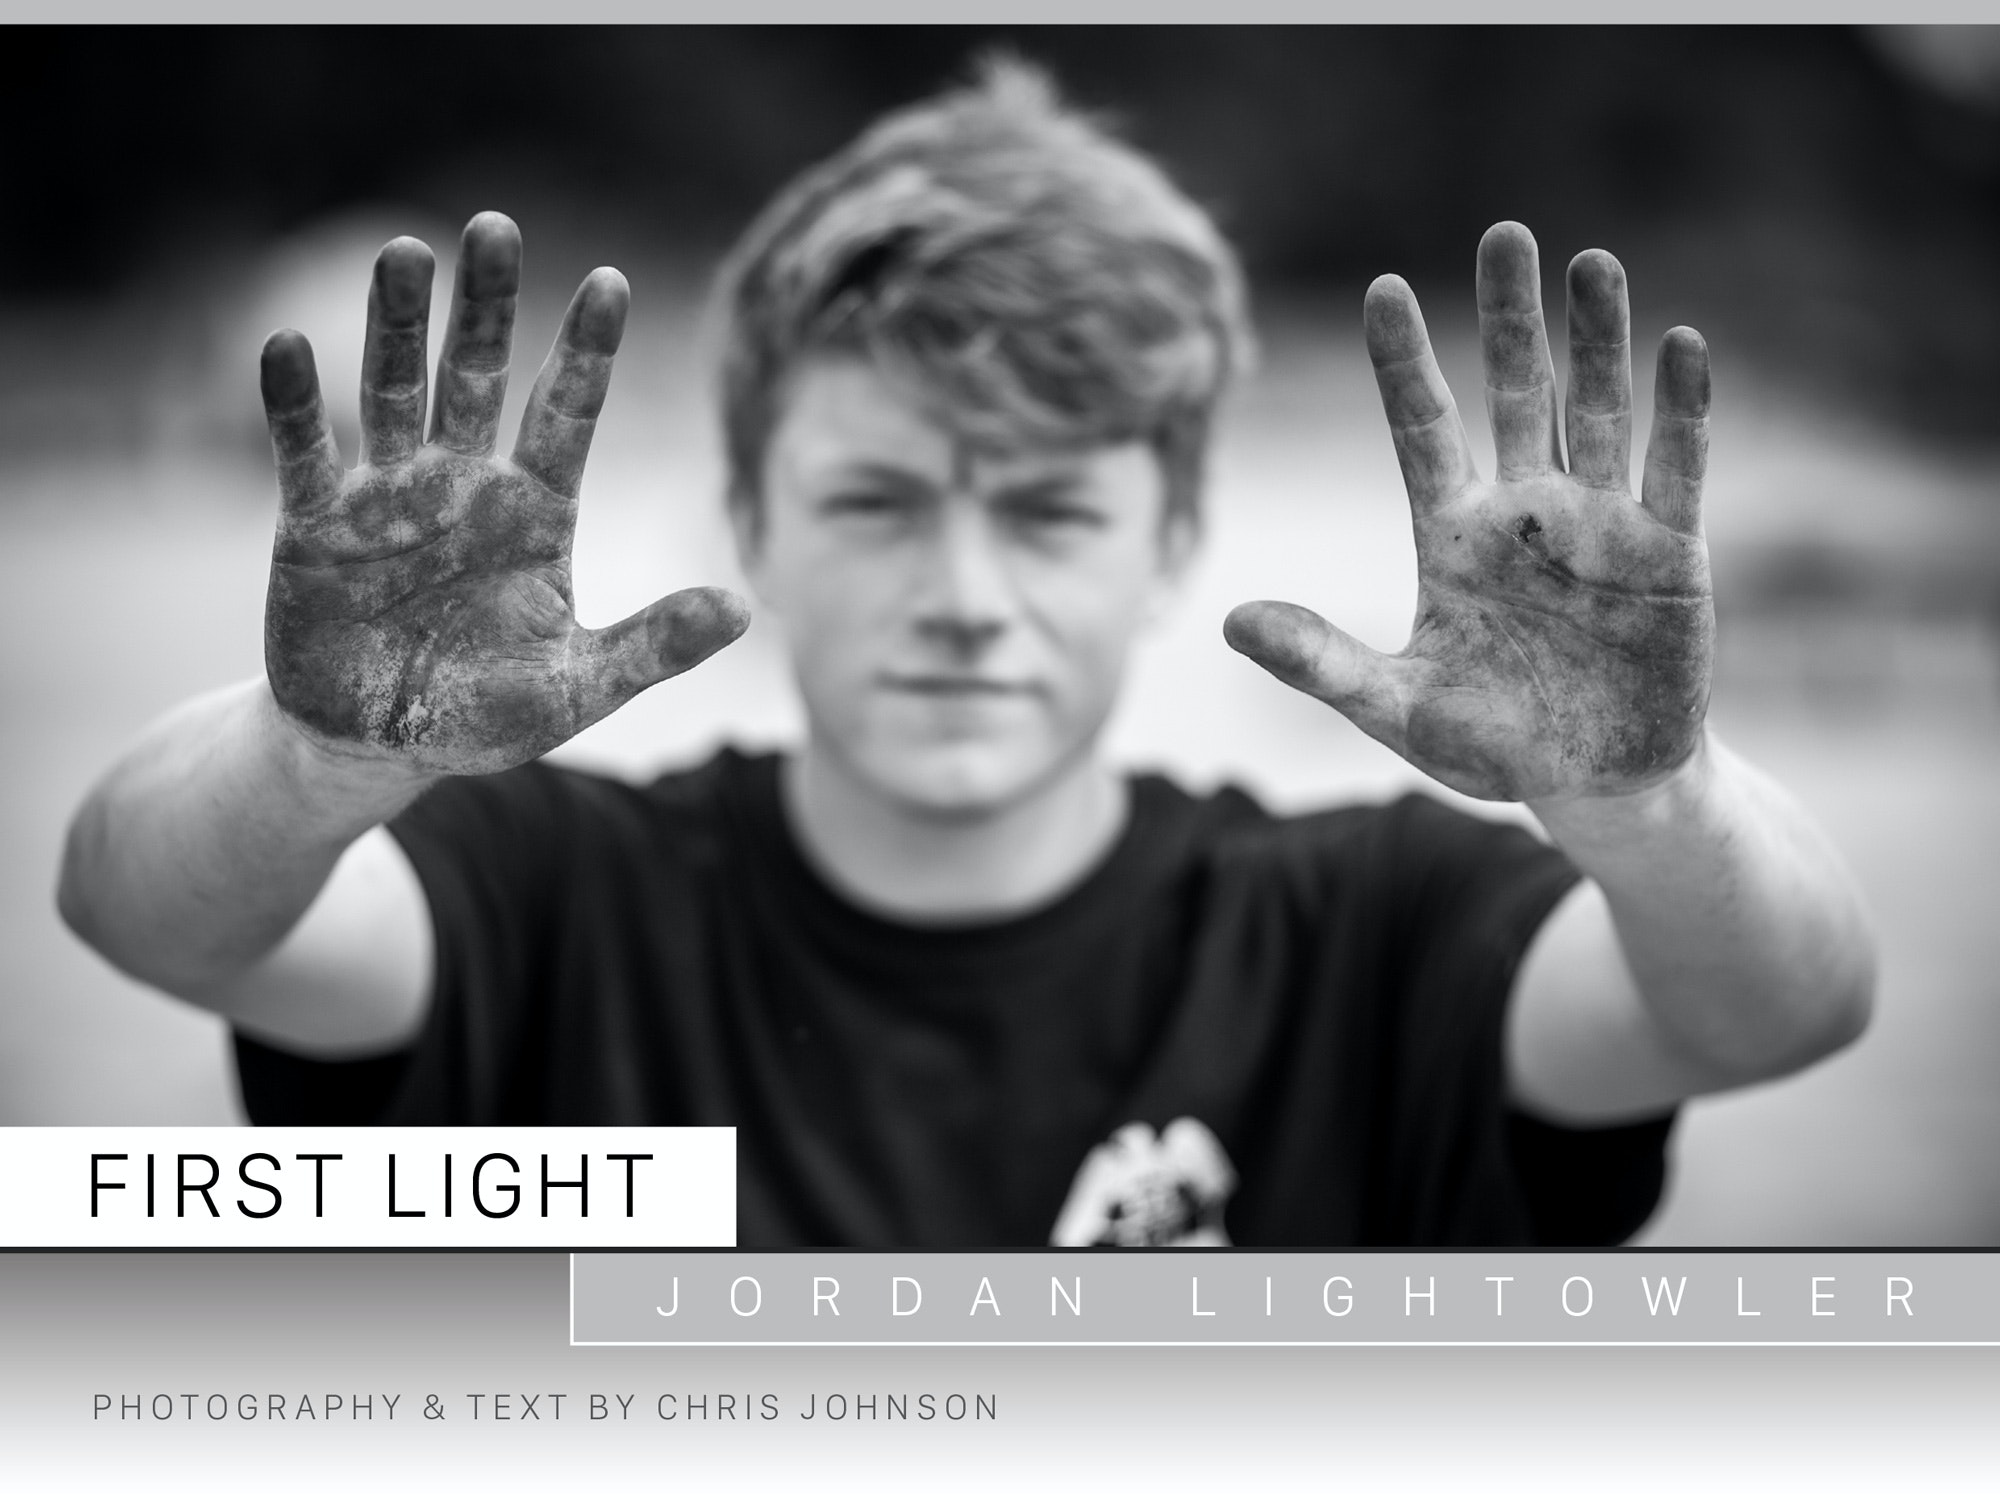 Jordan Lightowler – First Light